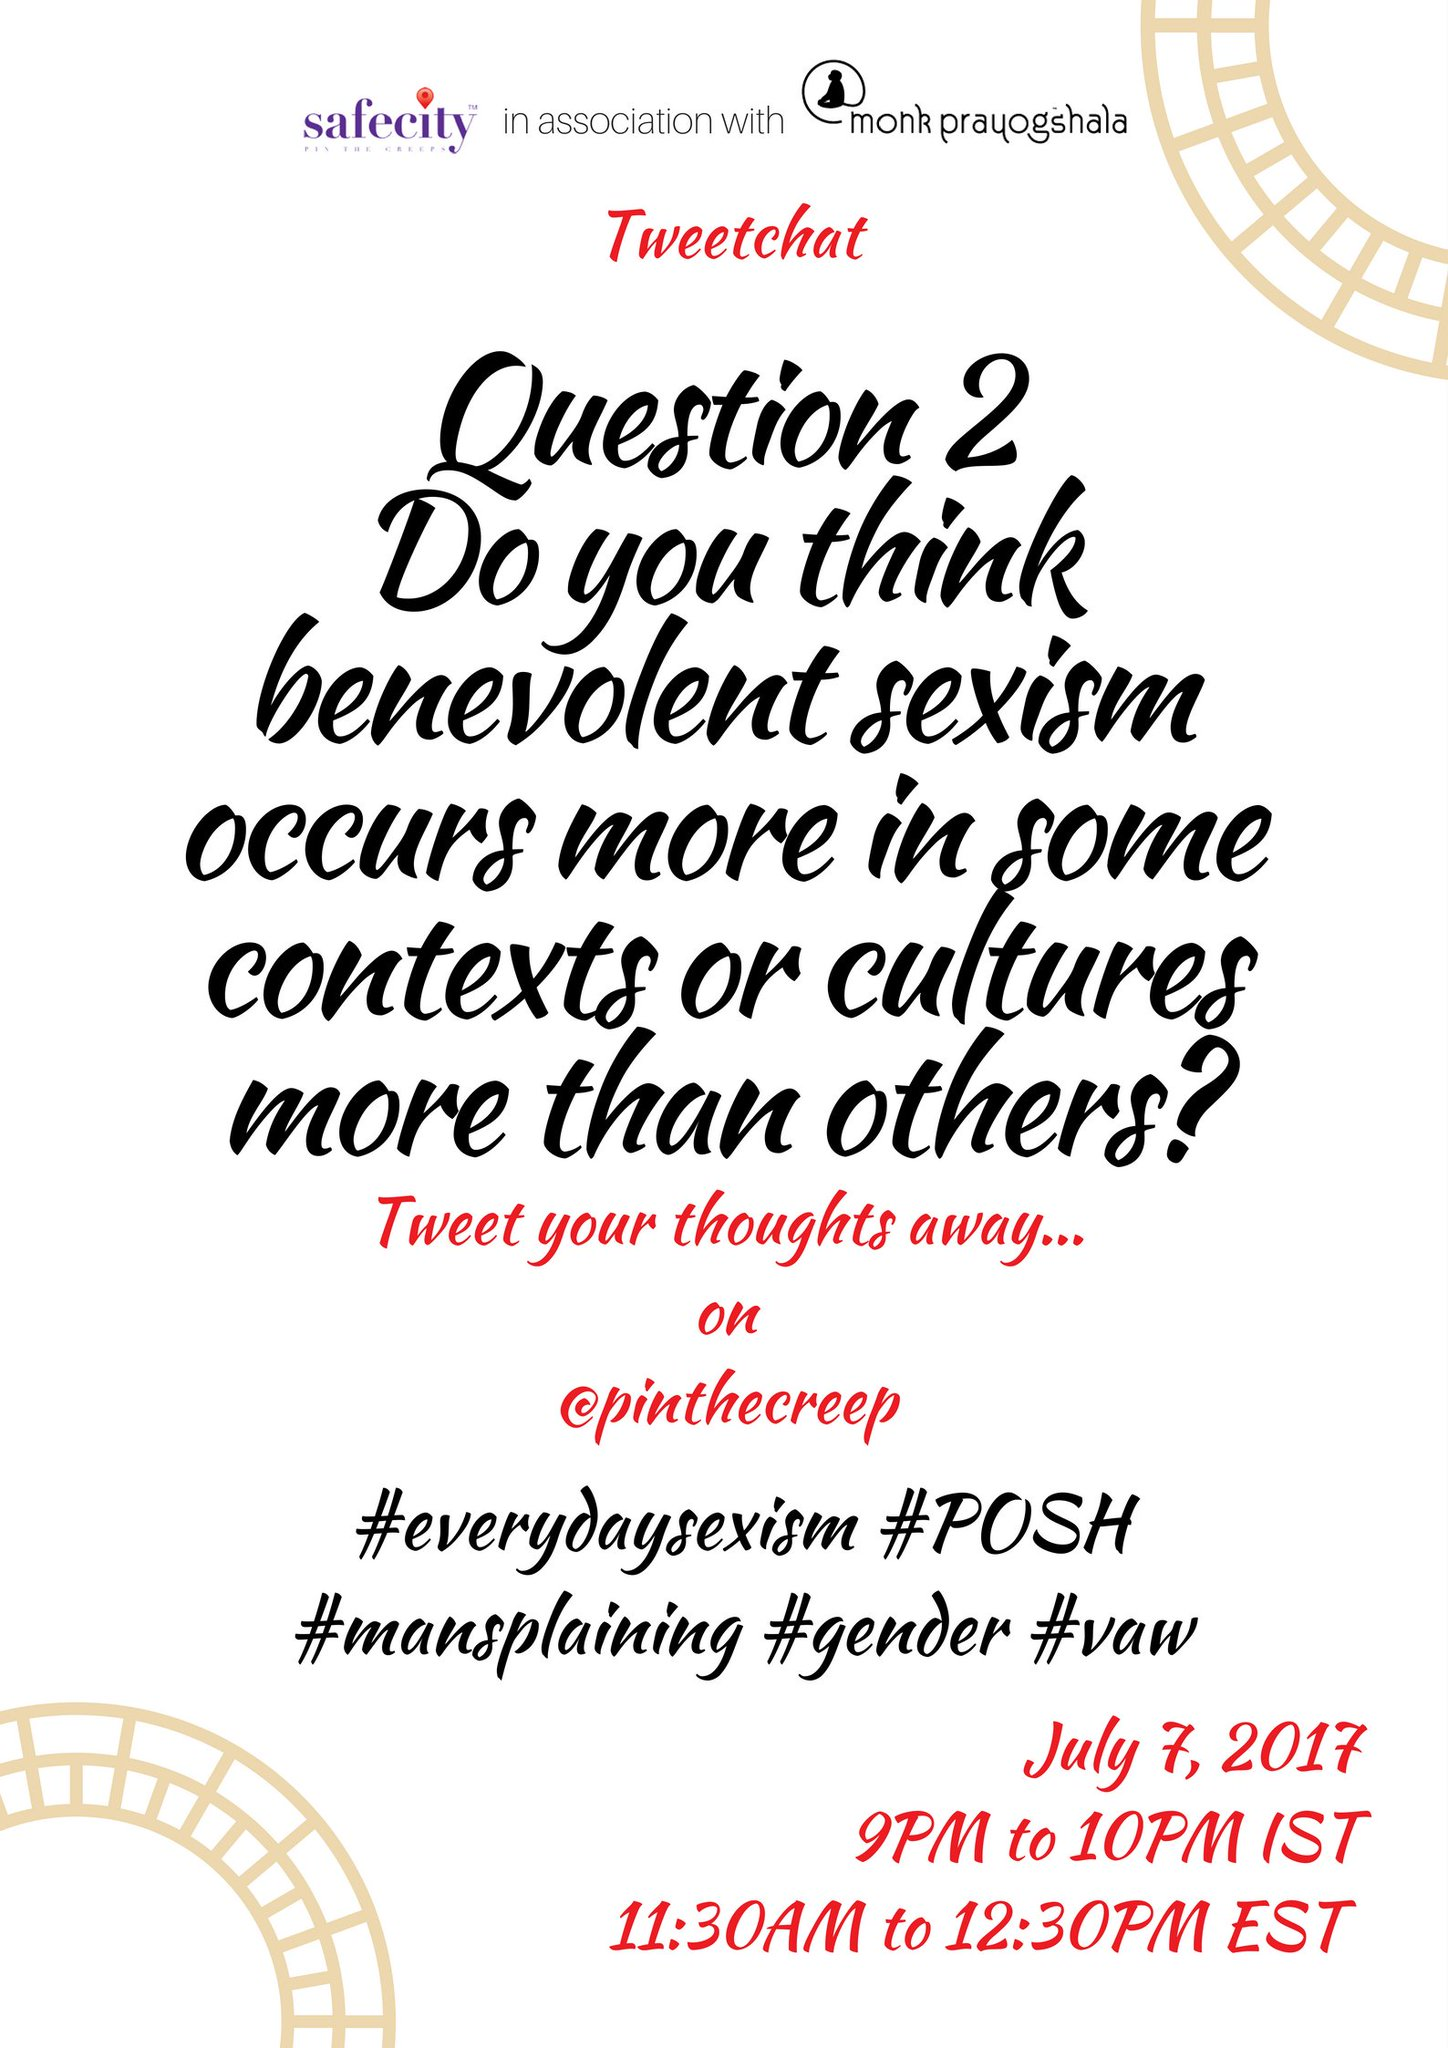 We've got a conversation going! We're moving things on with Q2  #everydaysexism #VAW #POSH #gender https://t.co/HNYpmdXQfR